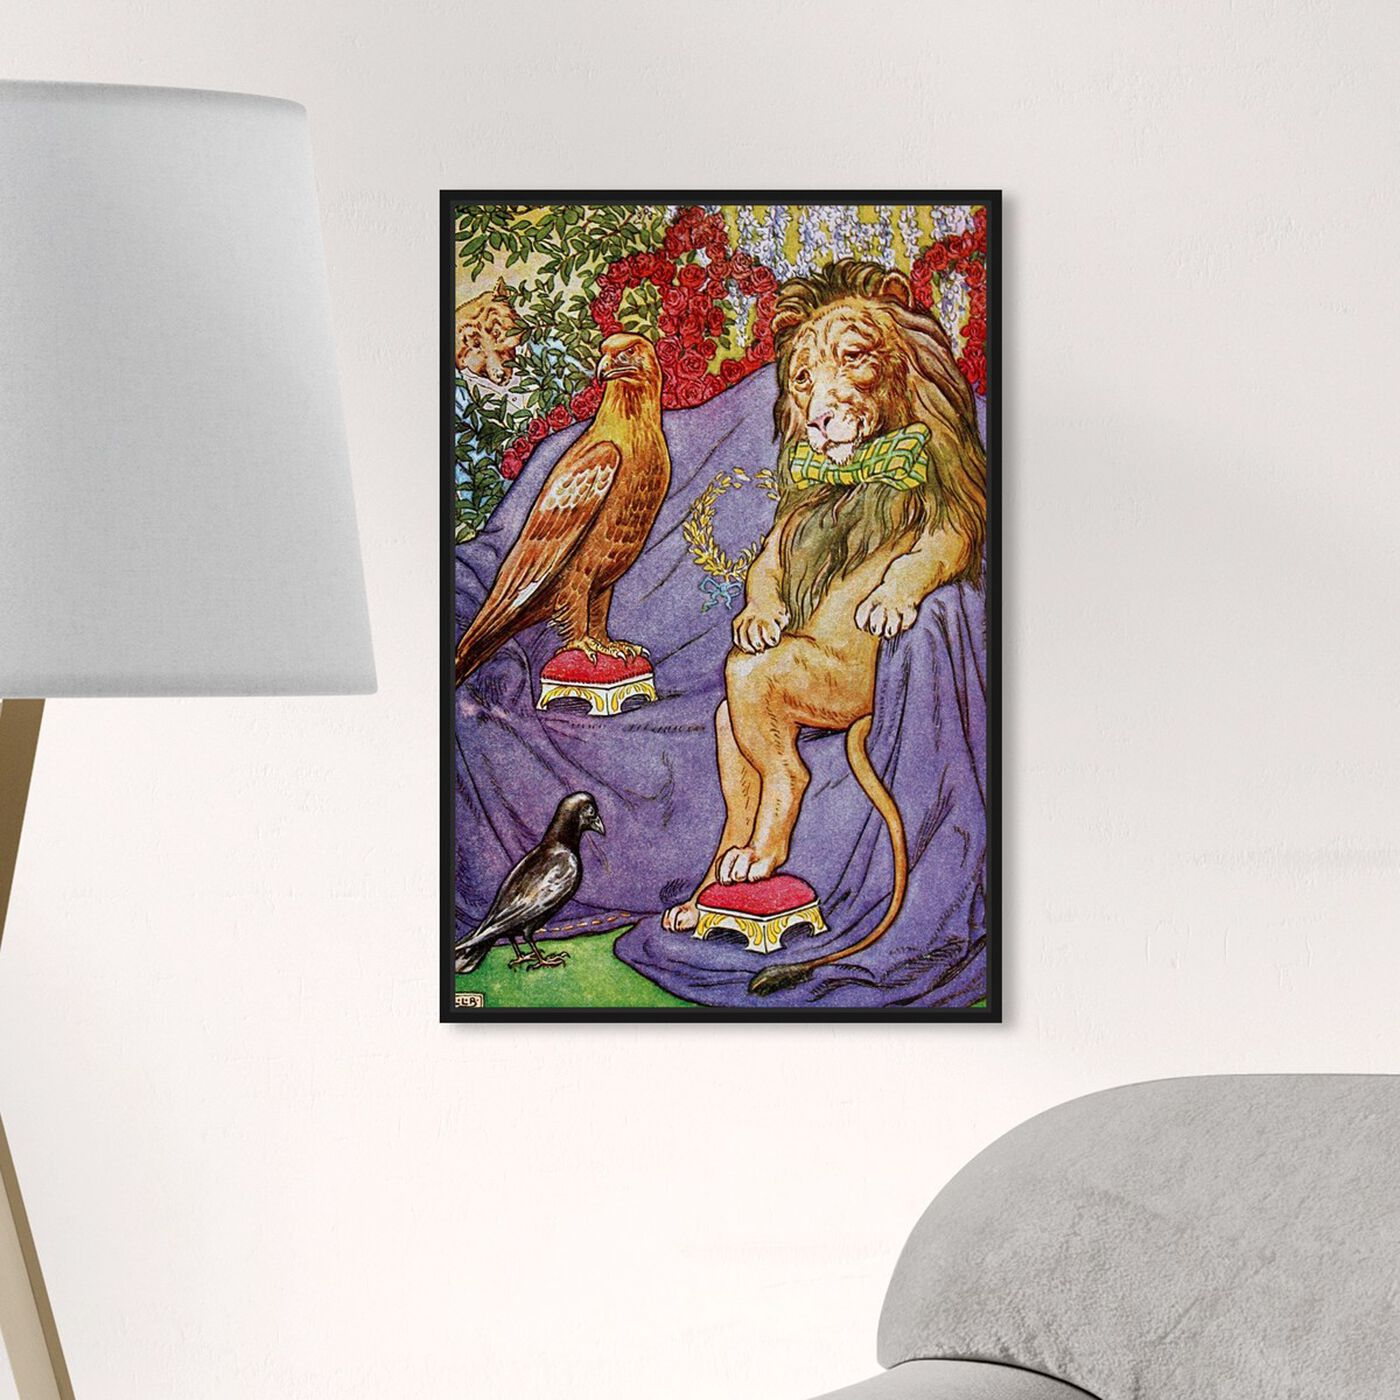 Hanging view of The Wise King featuring animals and felines art.